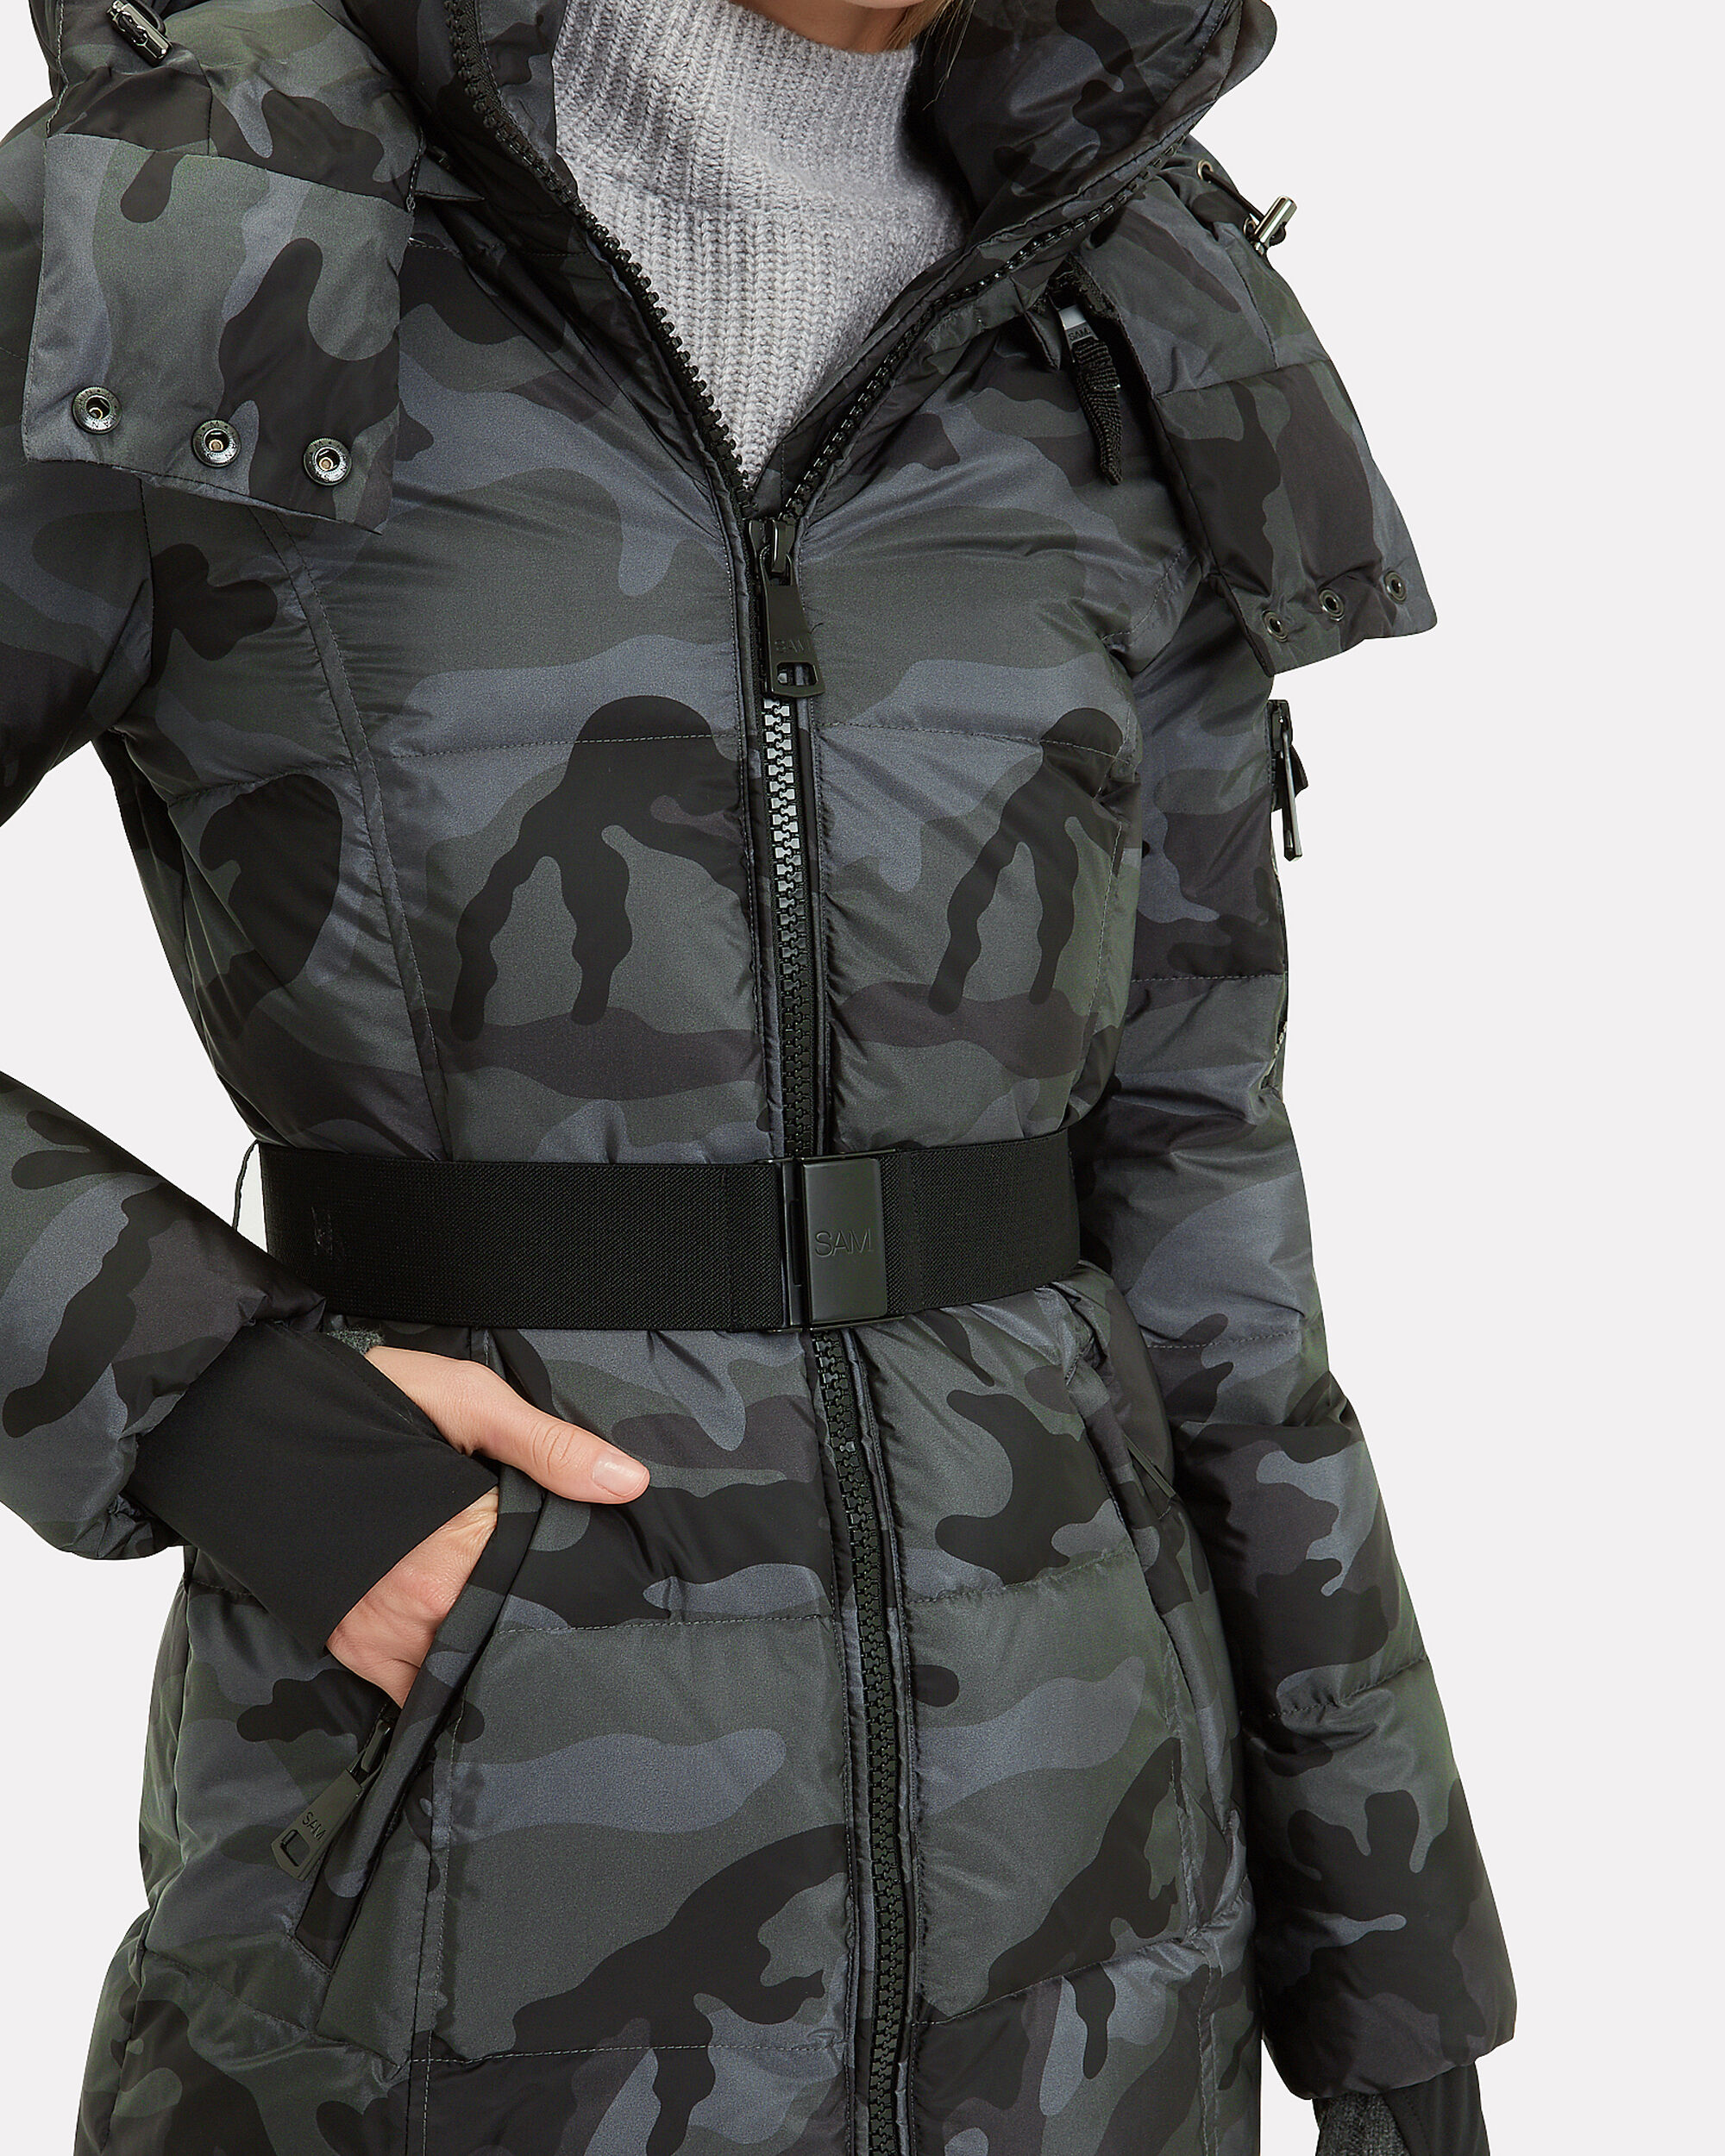 Soho Belted Camo Puffer Jacket, GREY/CAMO, hi-res